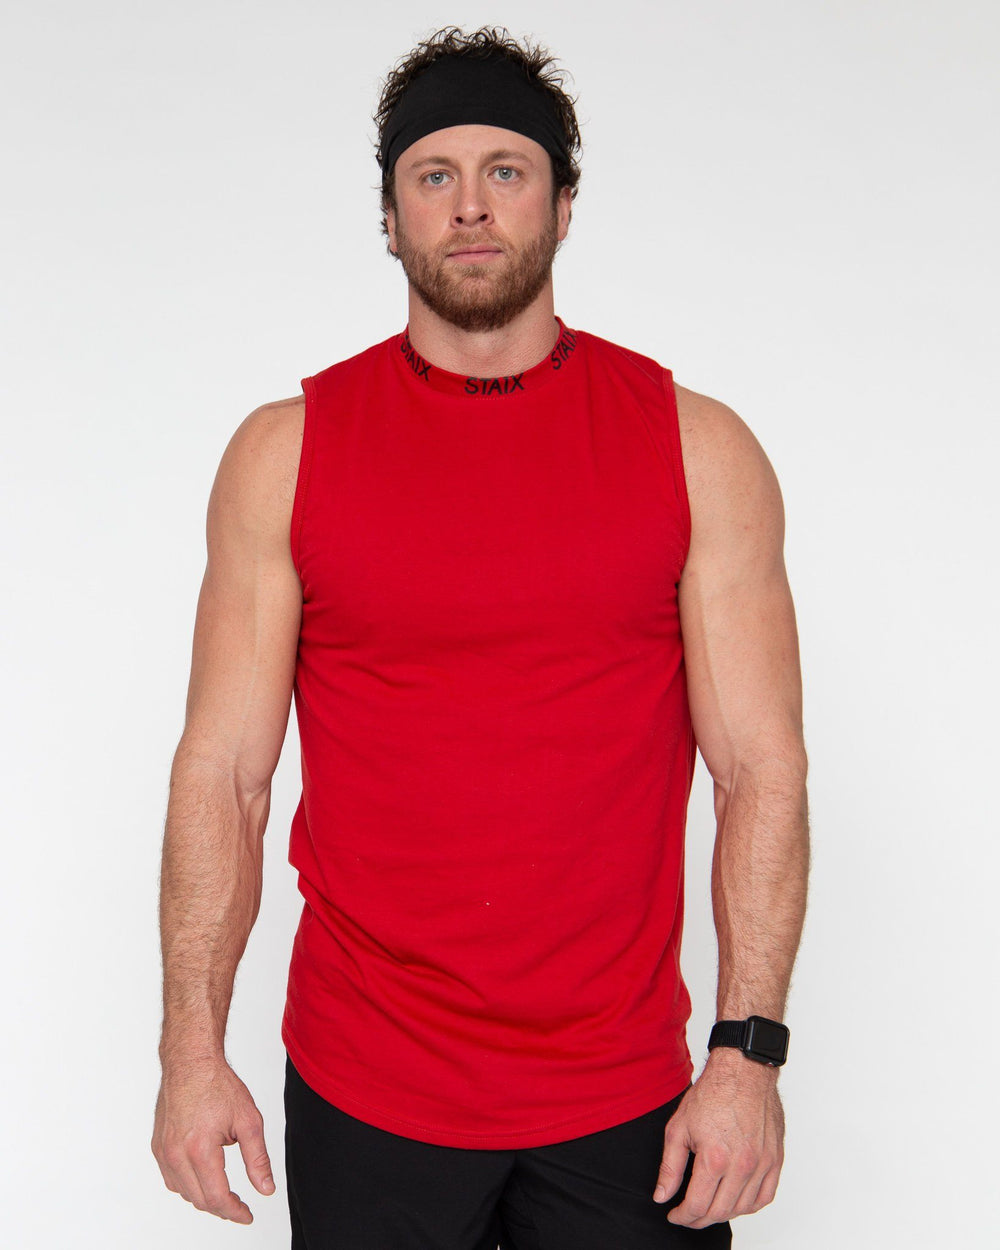 IMPAC TANK STAIX SMALL RED